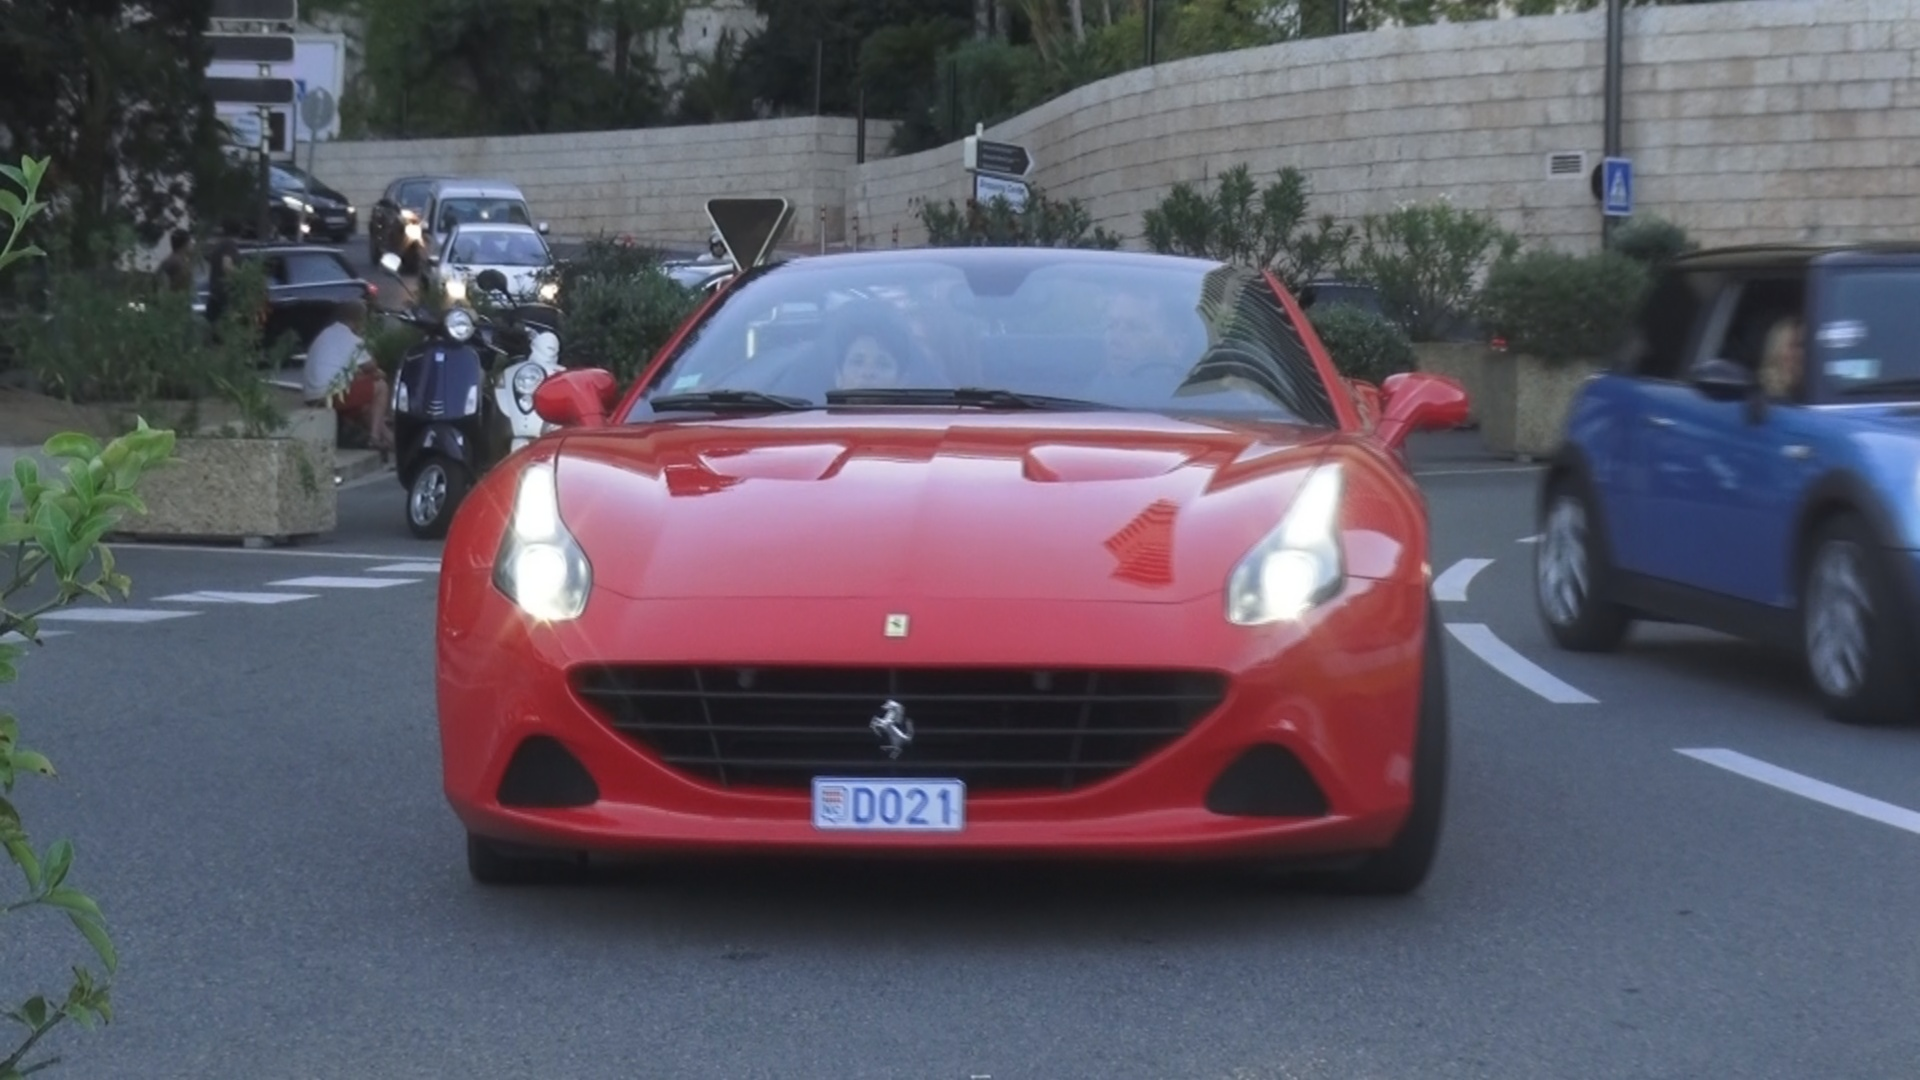 Ferrari California T - D021 (MC)